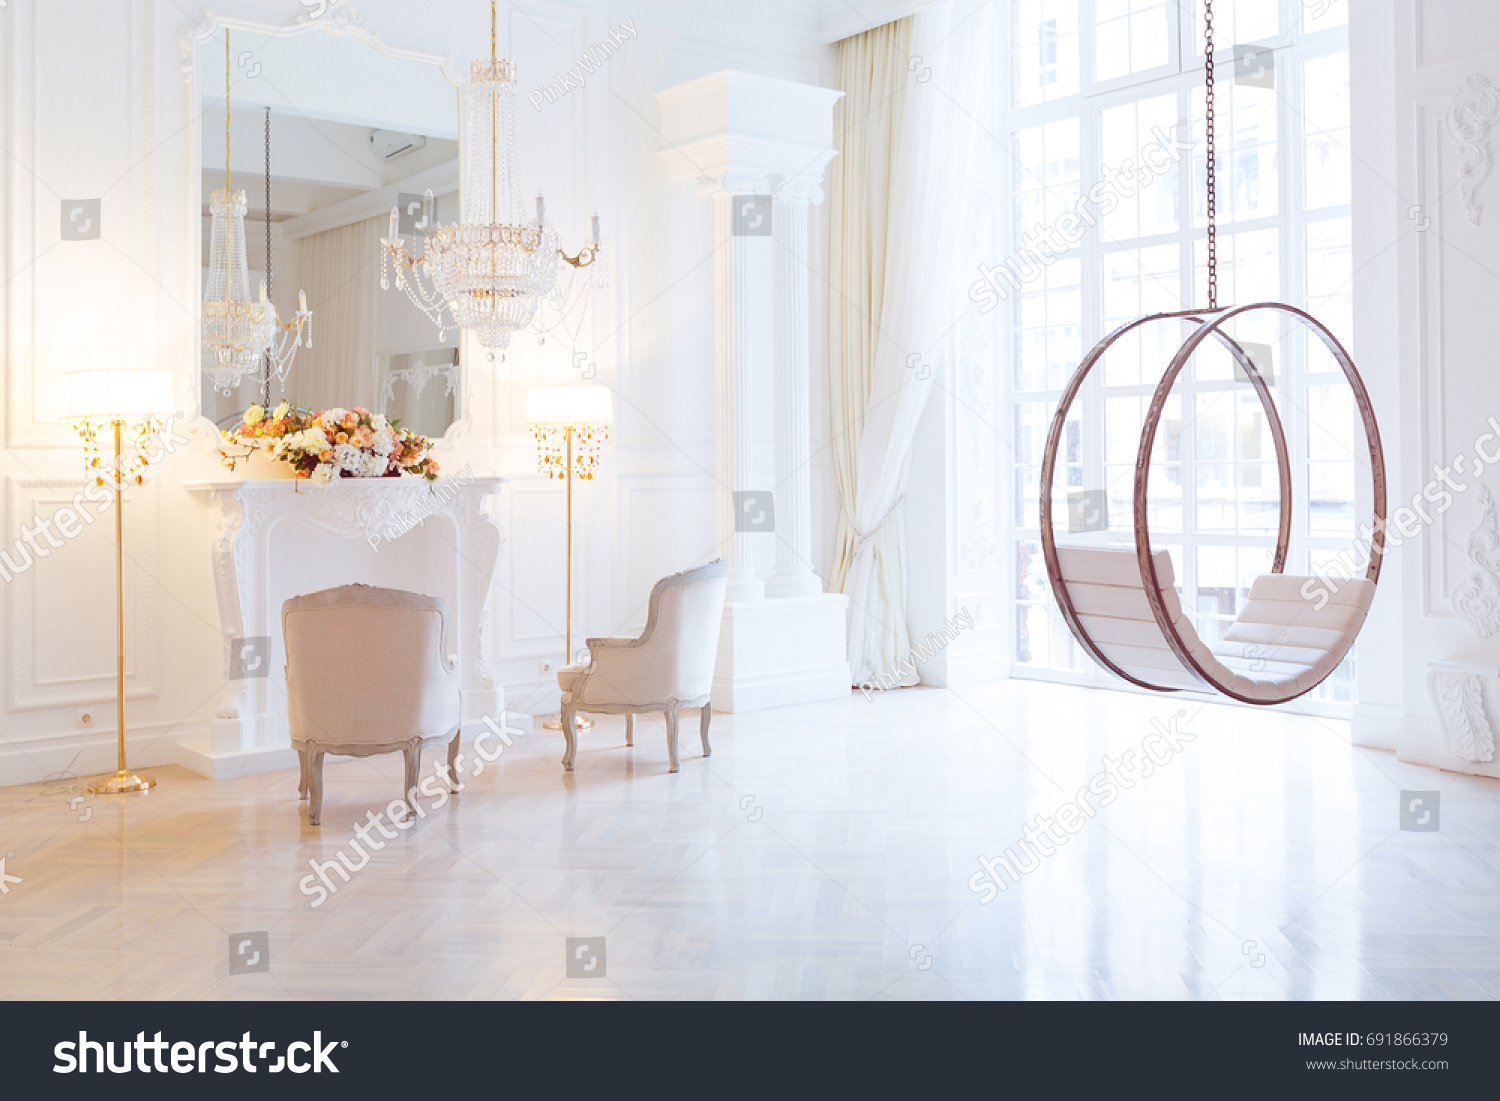 Modern light clean rich baroque style stock photo 691866379 modern light clean rich baroque style interior with swing dailygadgetfo Image collections